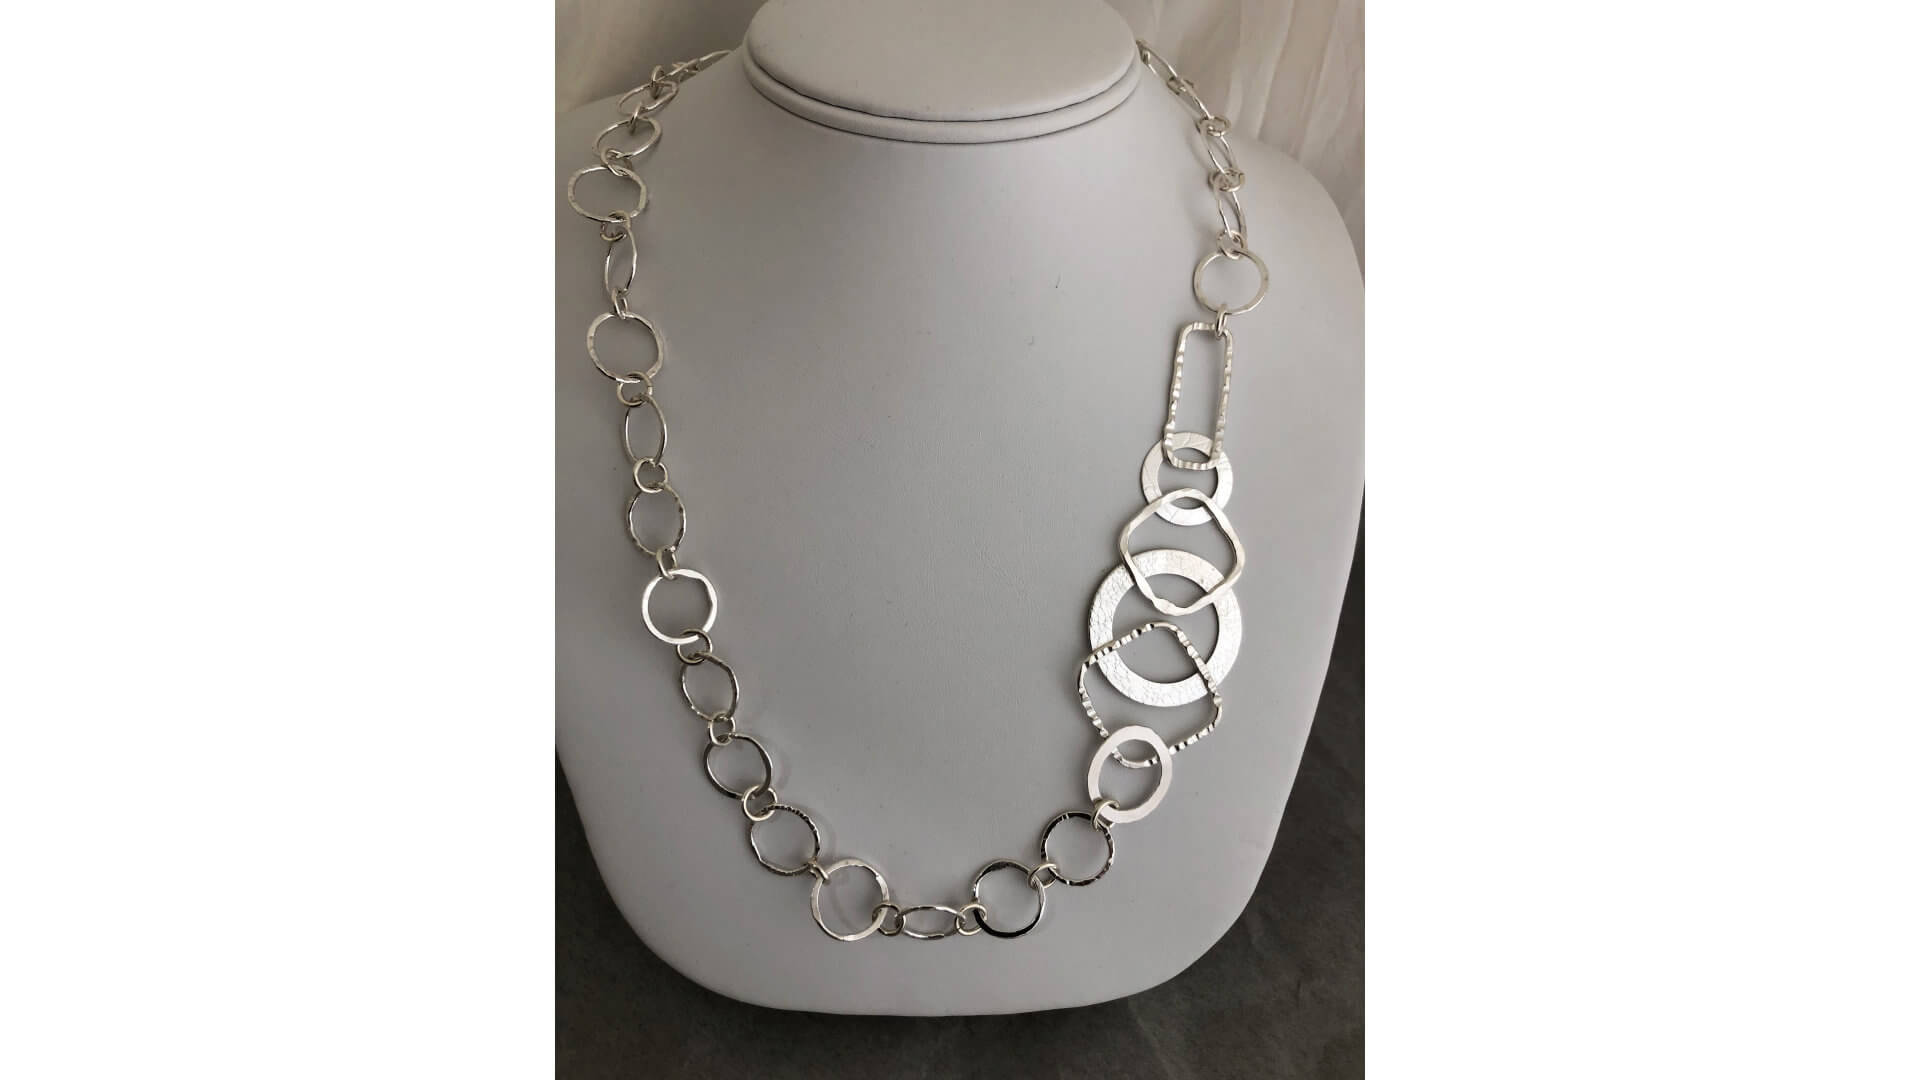 Landmark-Inspired Silver Chain by Susan Hazer Designs